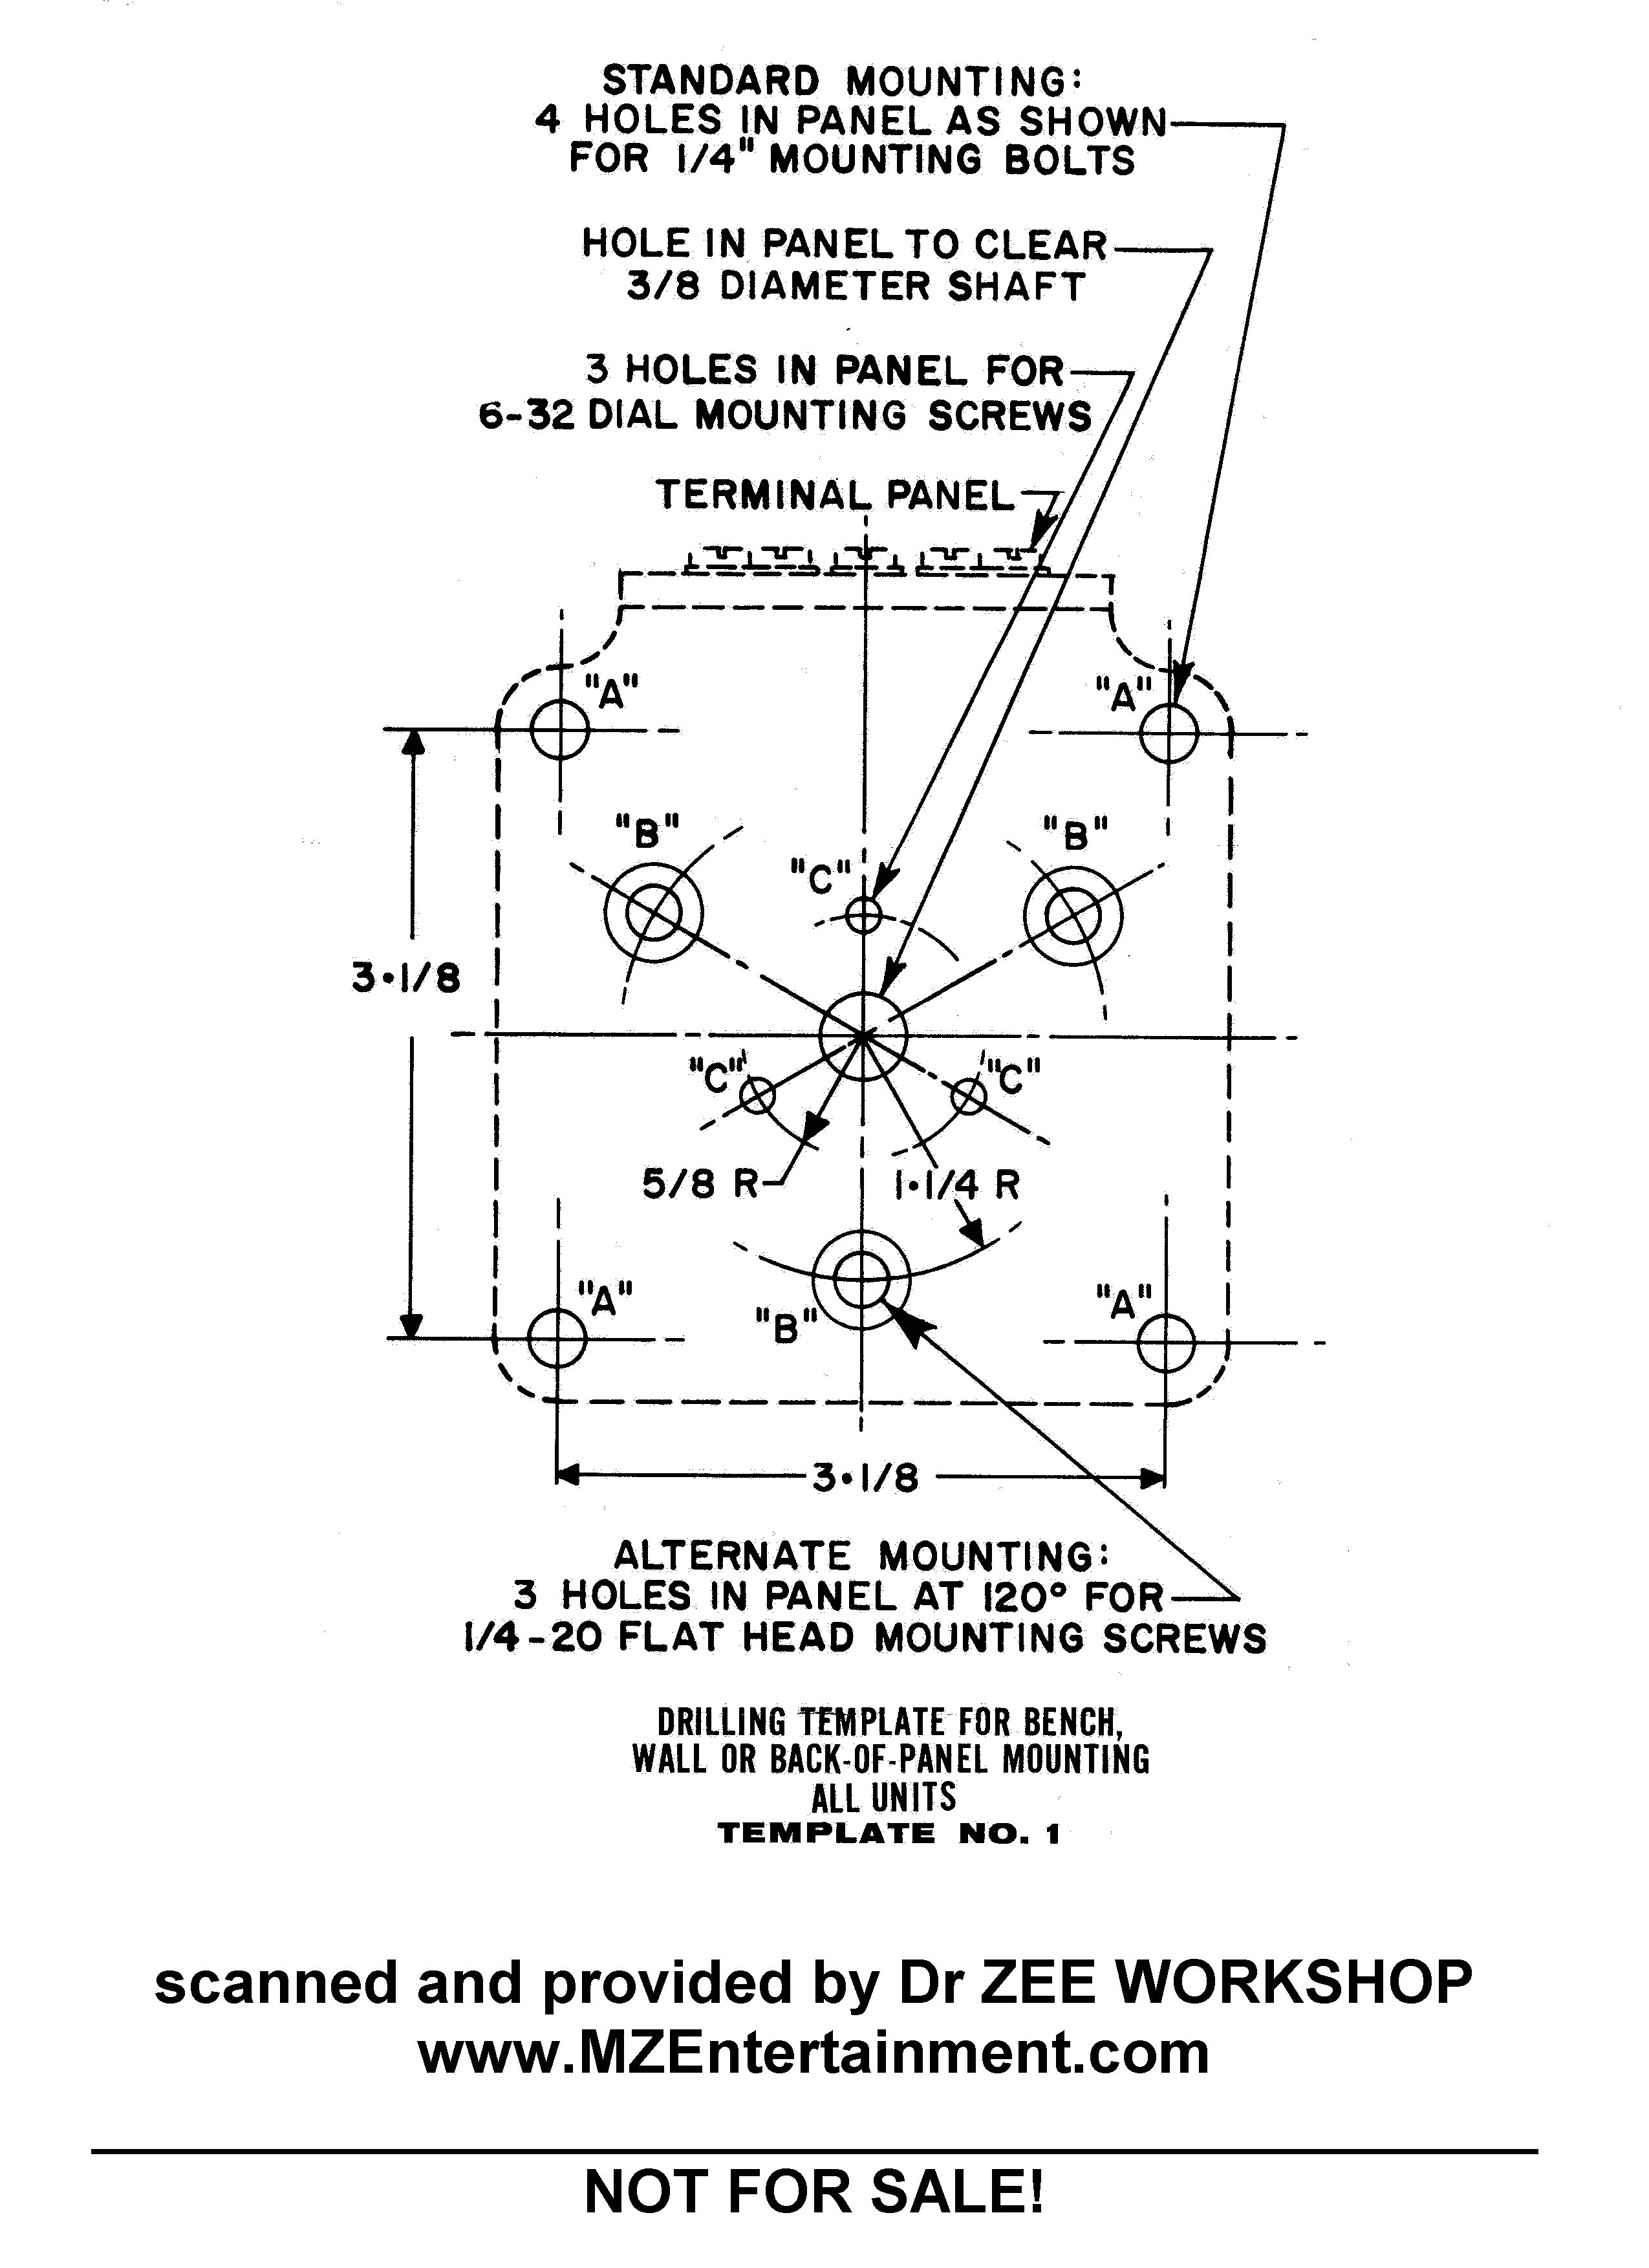 variac wiring diagram Download-Wiring Diagram for Auto Transformers Valid Powerstat Variable Autotransformer Wiring Diagram 9-o